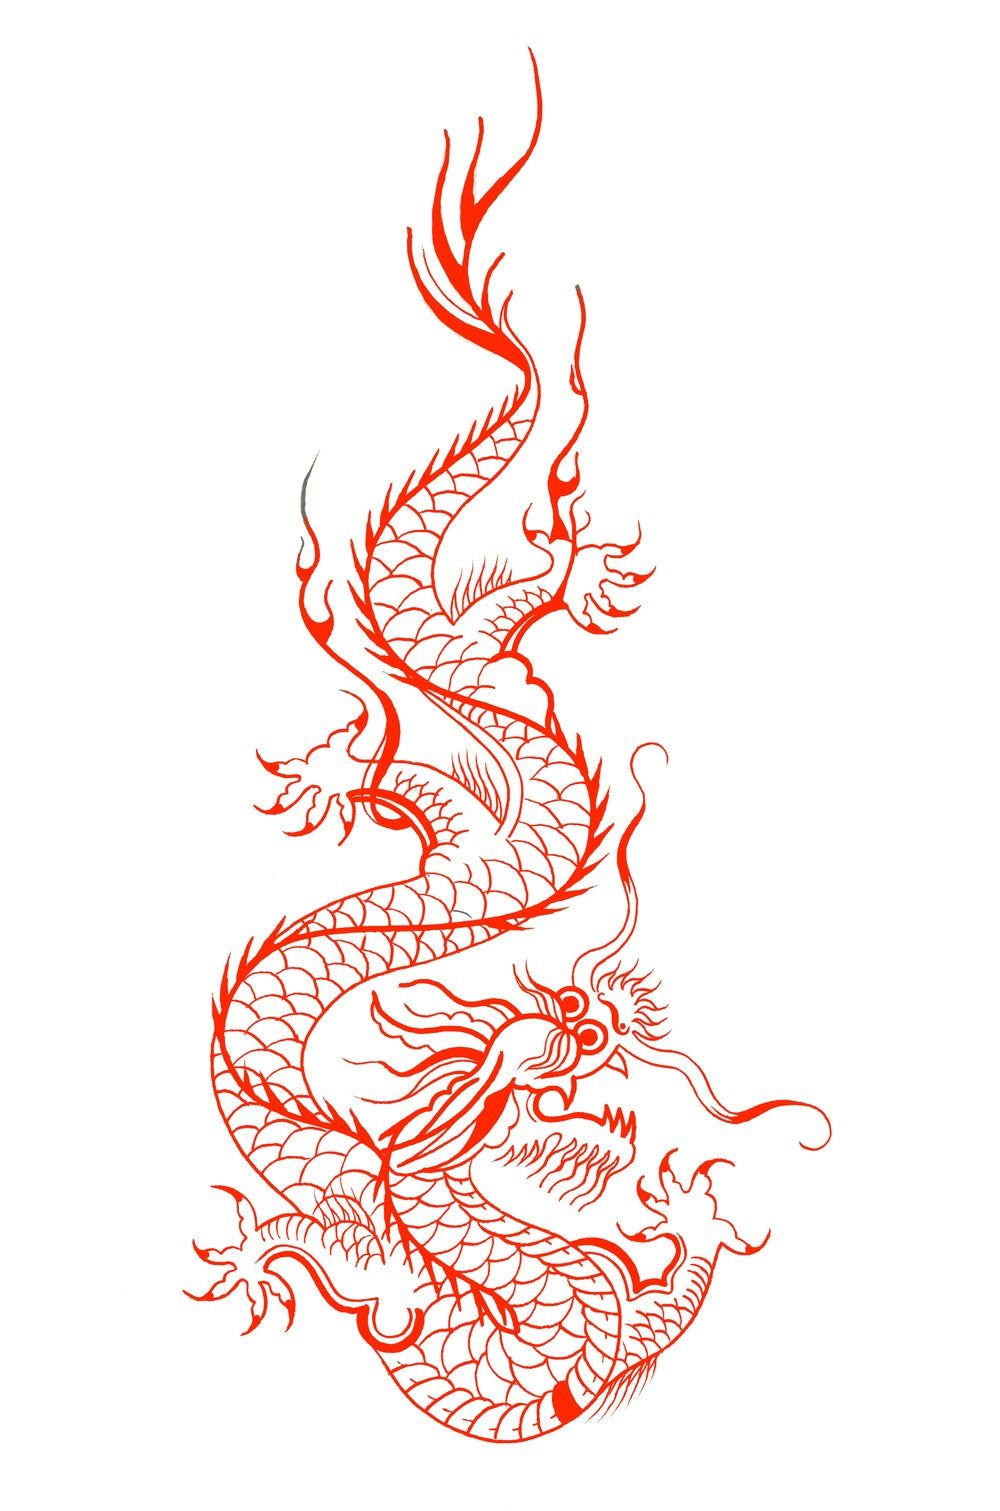 Image Of Red Dragon Print Red Dragon Tattoo Small Dragon Tattoos Dragon Tattoo Designs